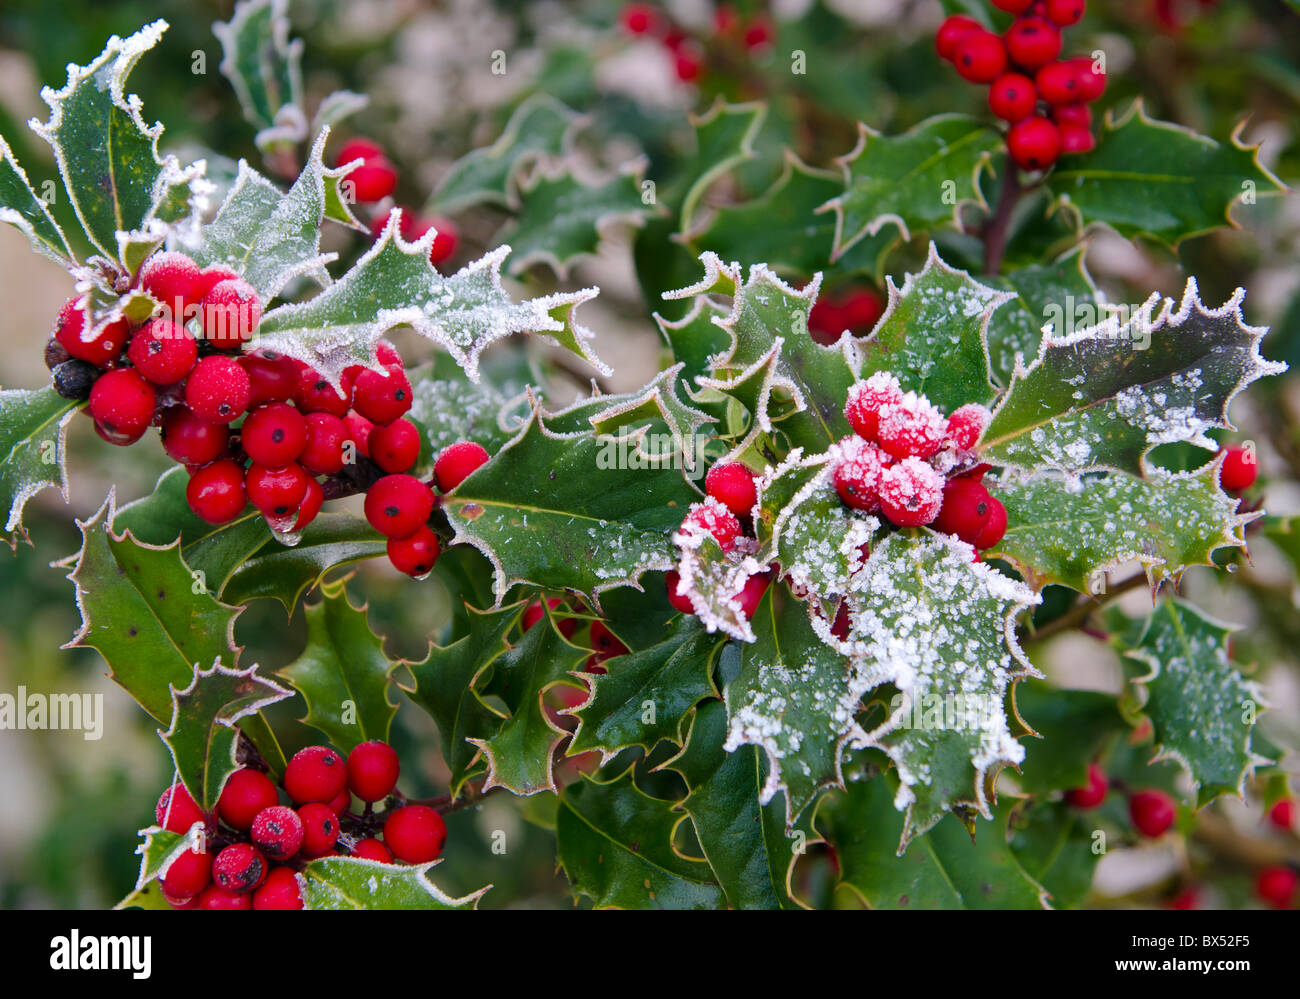 Holly and berries in snow - Stock Image